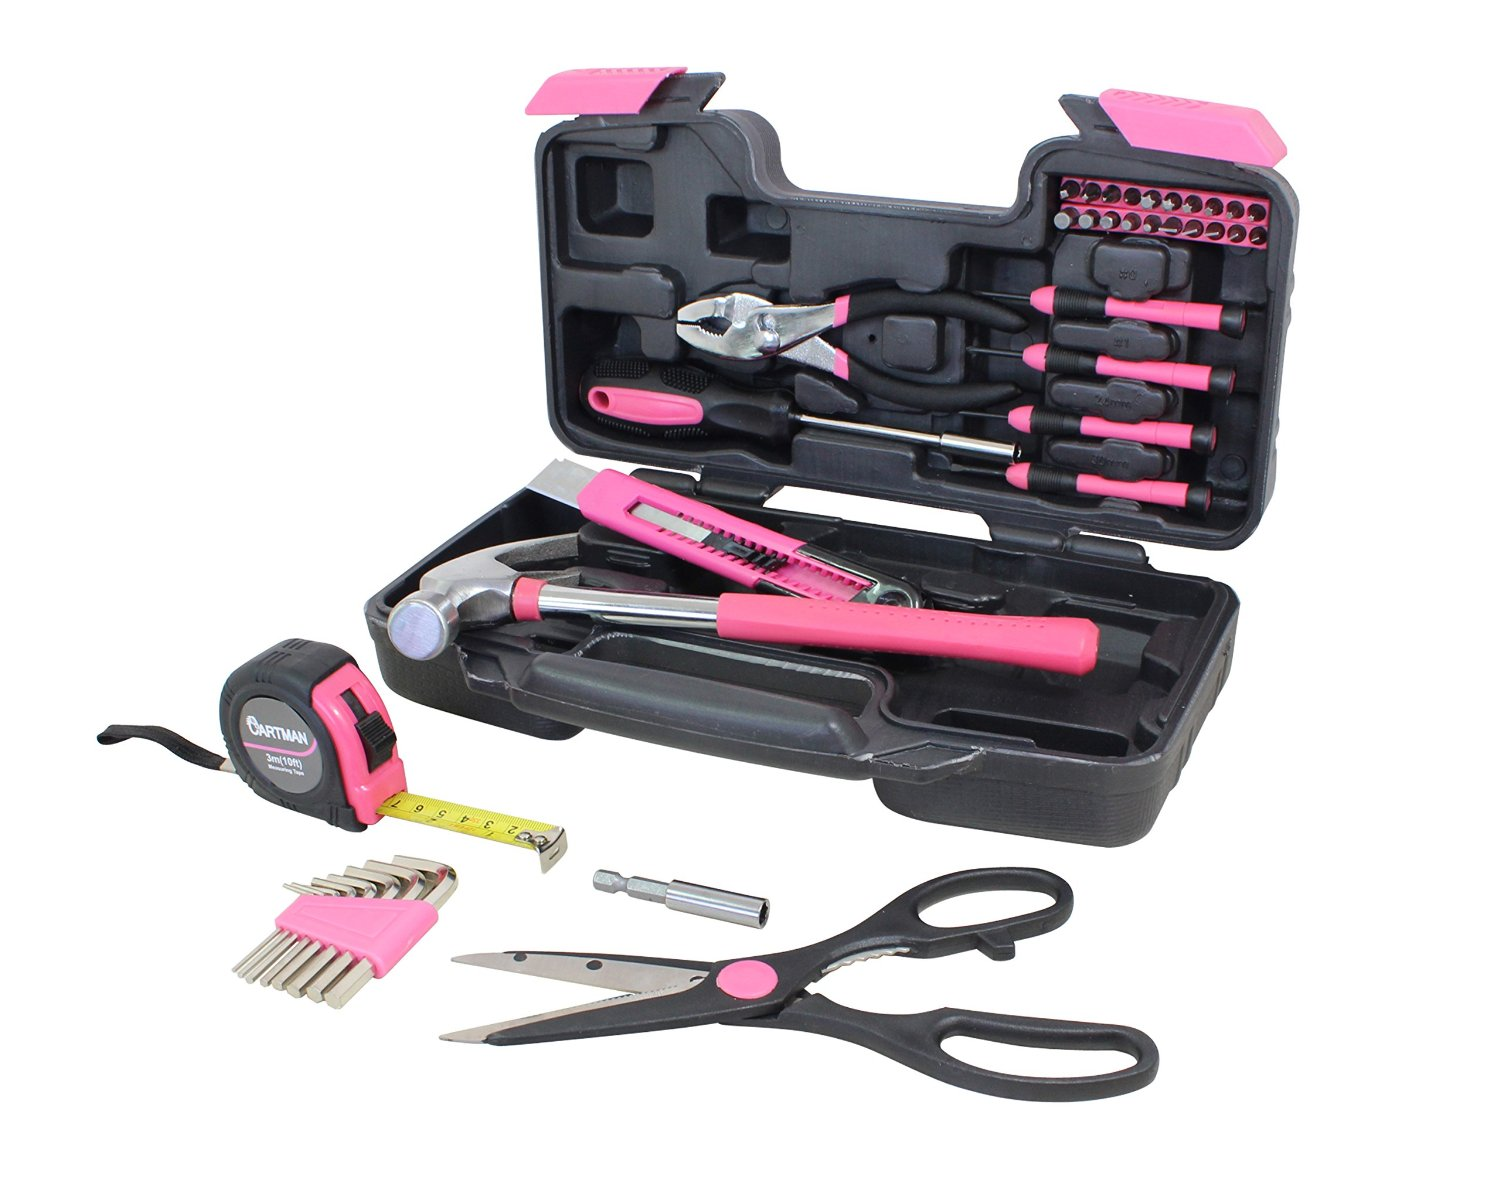 d20e09bbfcb Cartman Pink 39-Piece Tool Set - General Household Hand Tool Kit with Plastic  Toolbox Storage Case - Walmart.com